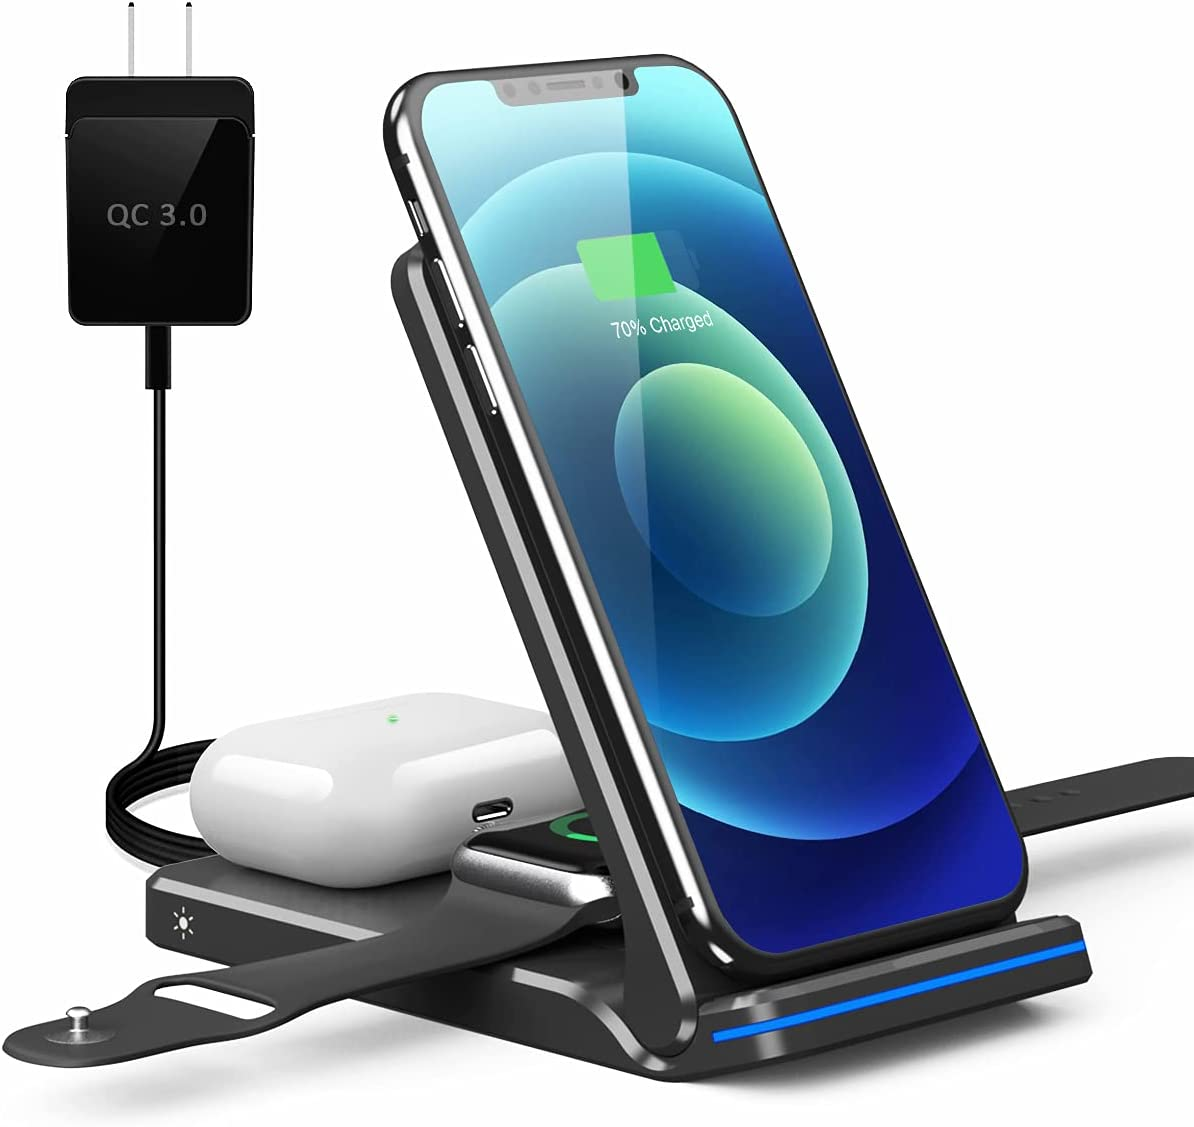 Wireless Charging Station, 3 in 1 Foldable Fast Charging Station, Wireless Charger Stand for iPhone 12/12 Pro/Mini/11/11 Pro Max/XR/X/Xs/8 Series,AirPods,iWatch,Samsung Phones(Wireless Charger, Black)